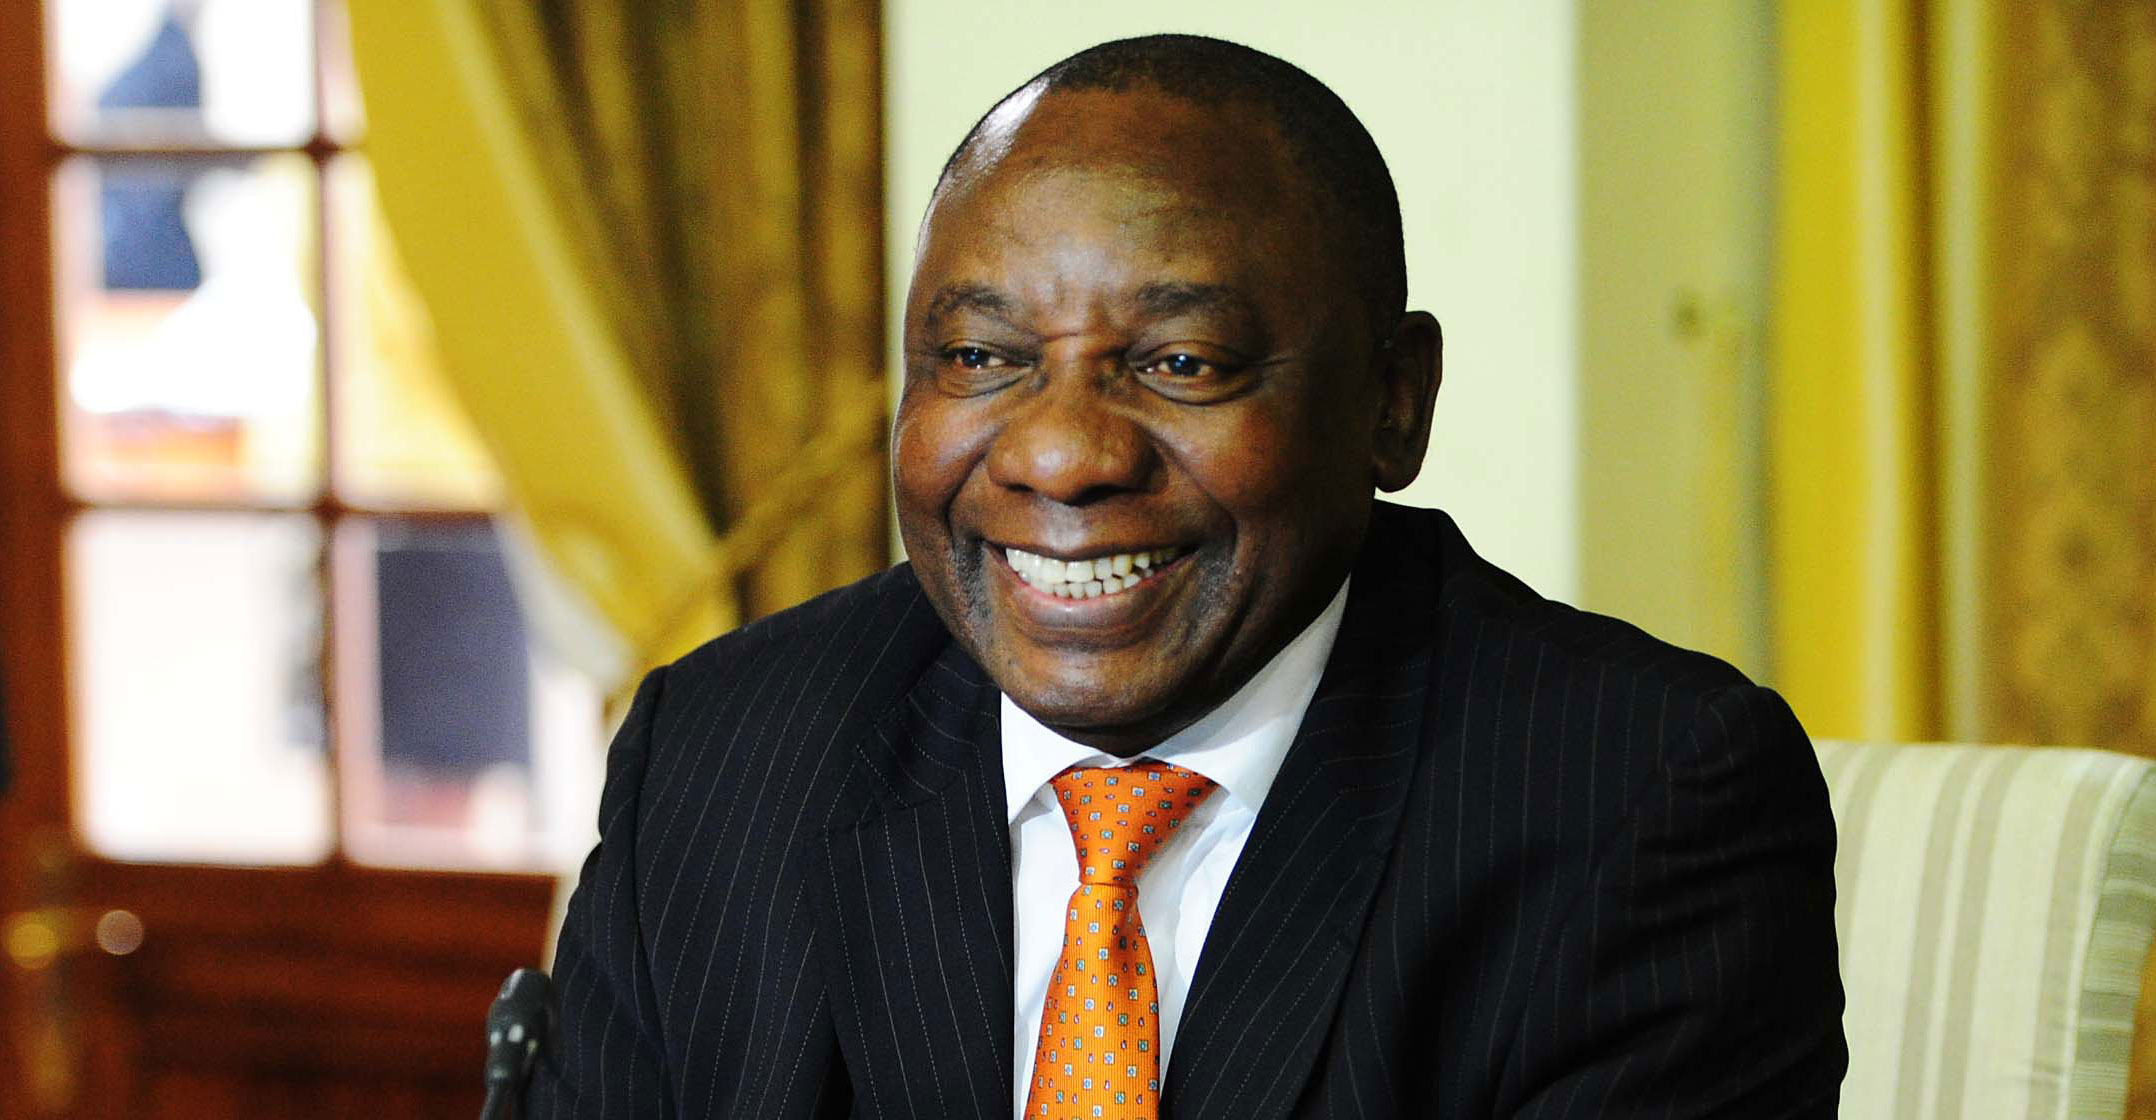 Ramaphosa vows allegations against Faith Muthambi will be dealt with